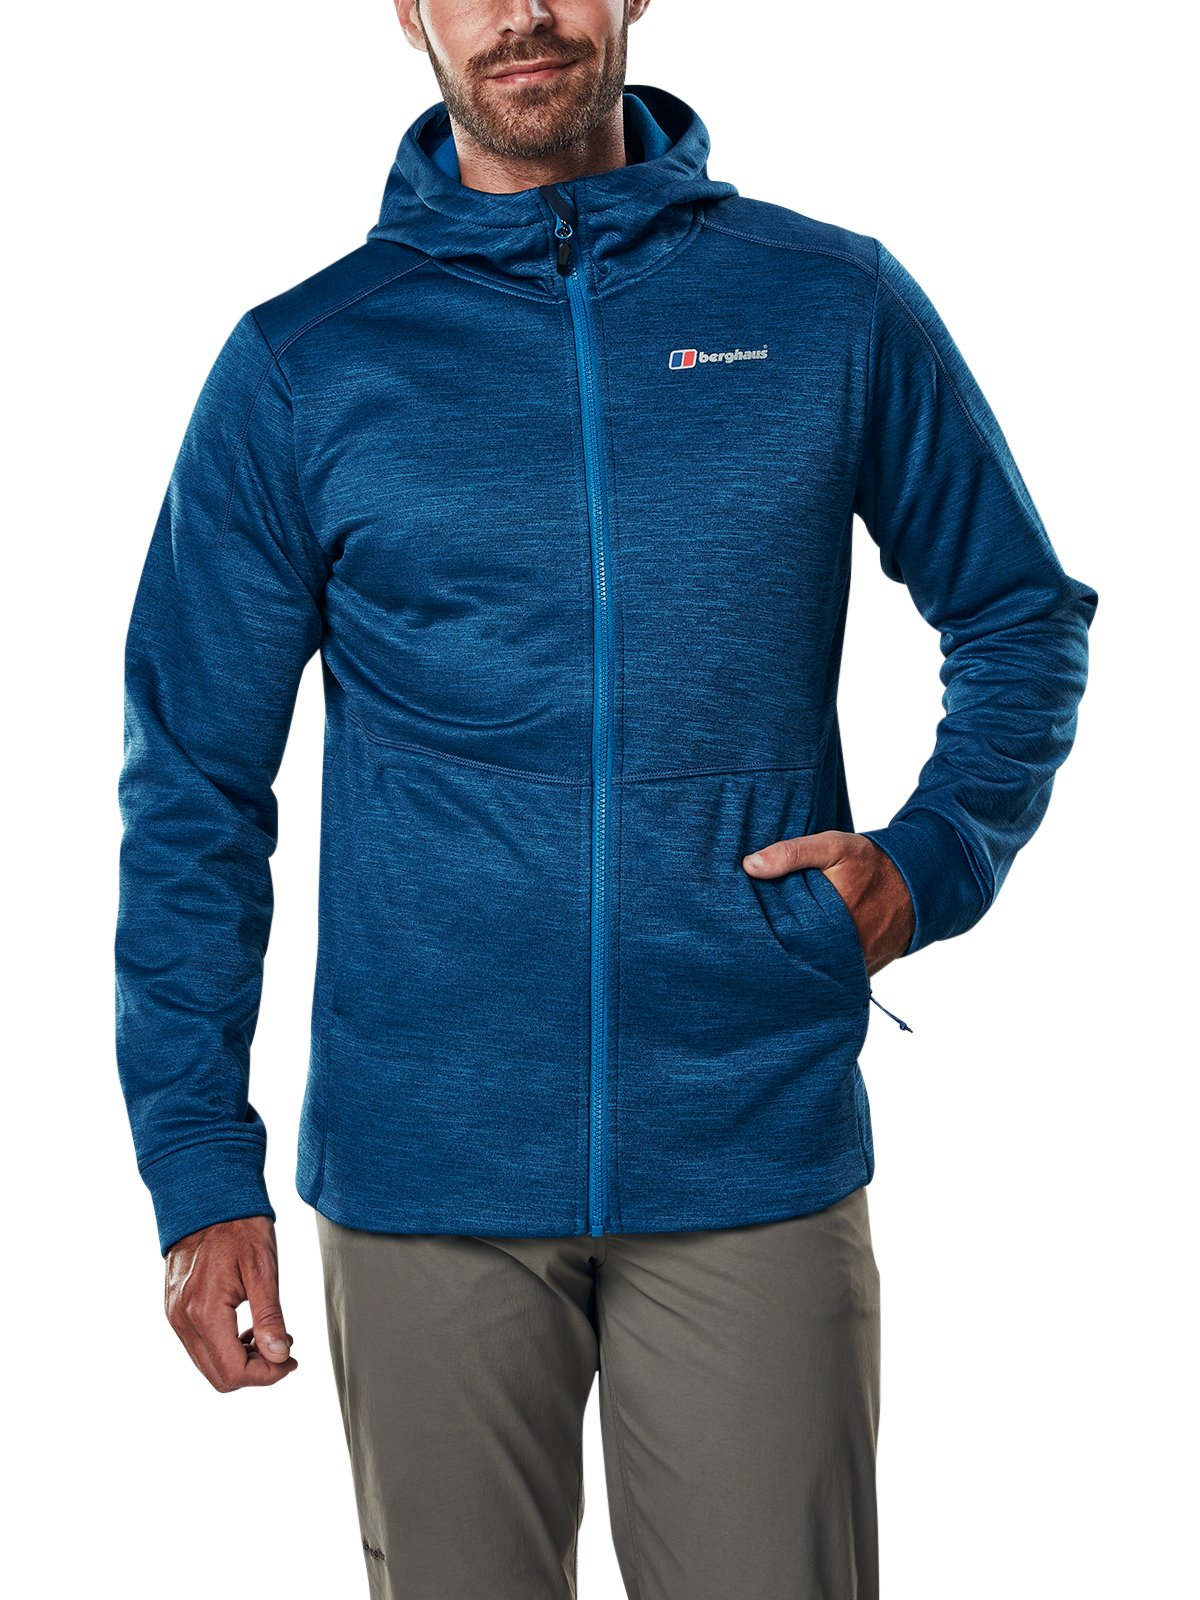 Berghaus Men's Kamloops Hooded Fleece Jacket